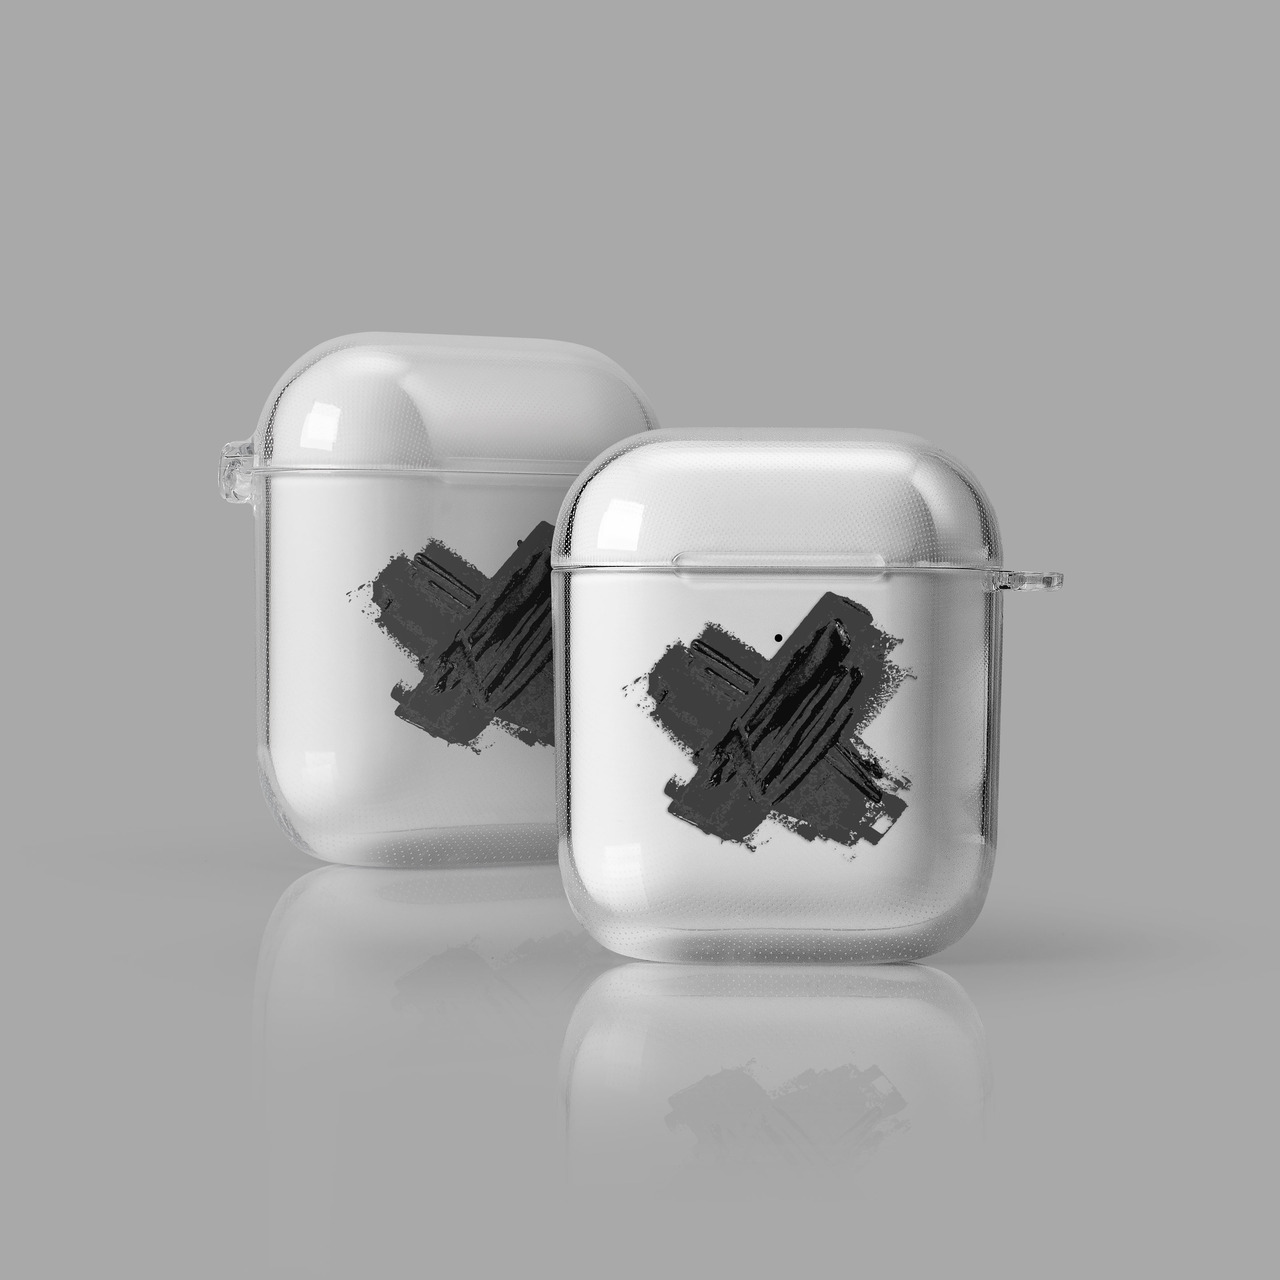 [Airpods cases] Touchable Concrete No.09